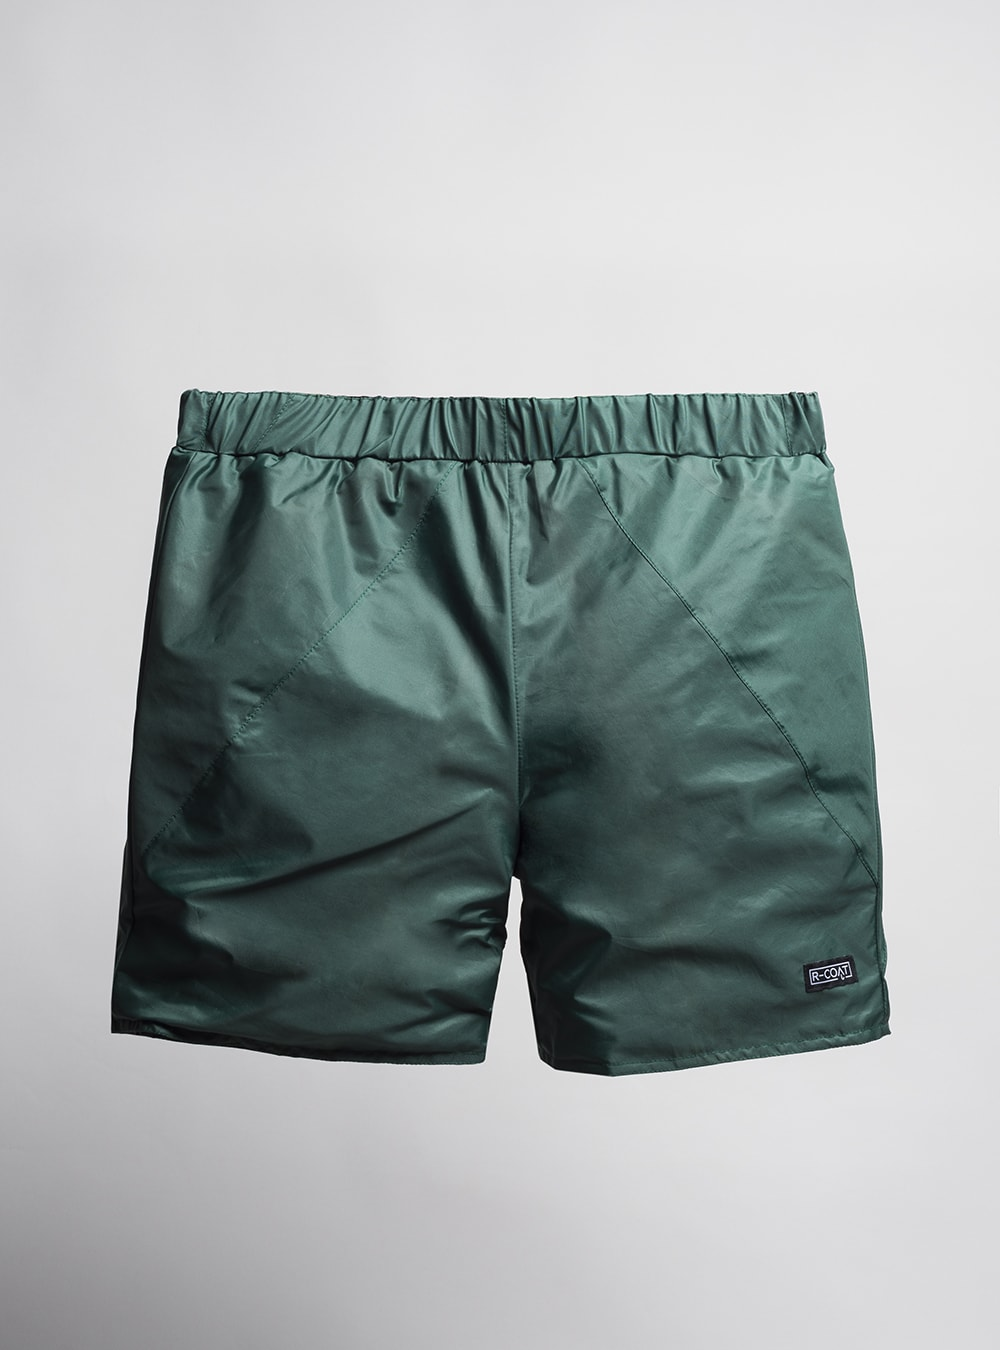 Shorts (forest green) made from upcycled umbrellas found in the streets, made in Portugal by wetheknot